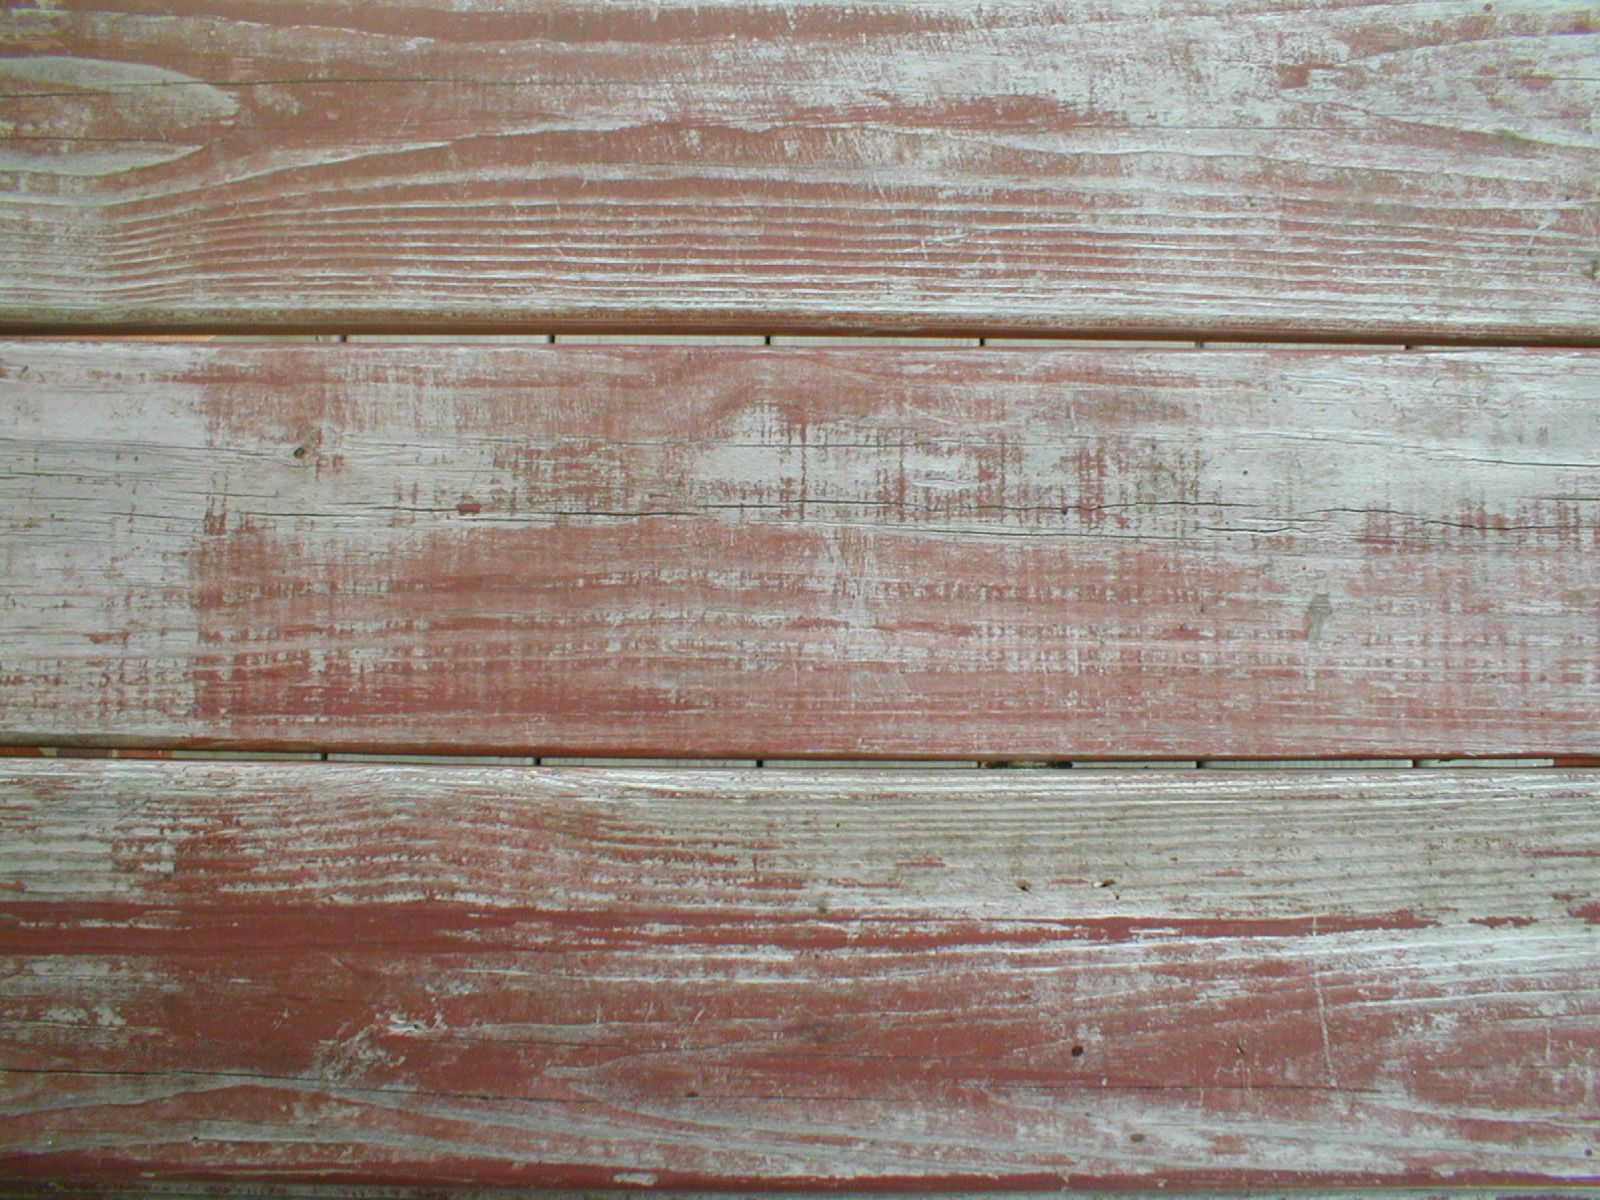 Pin by Madhuri H. (Maddy) on //Textures// | Picnic table ...